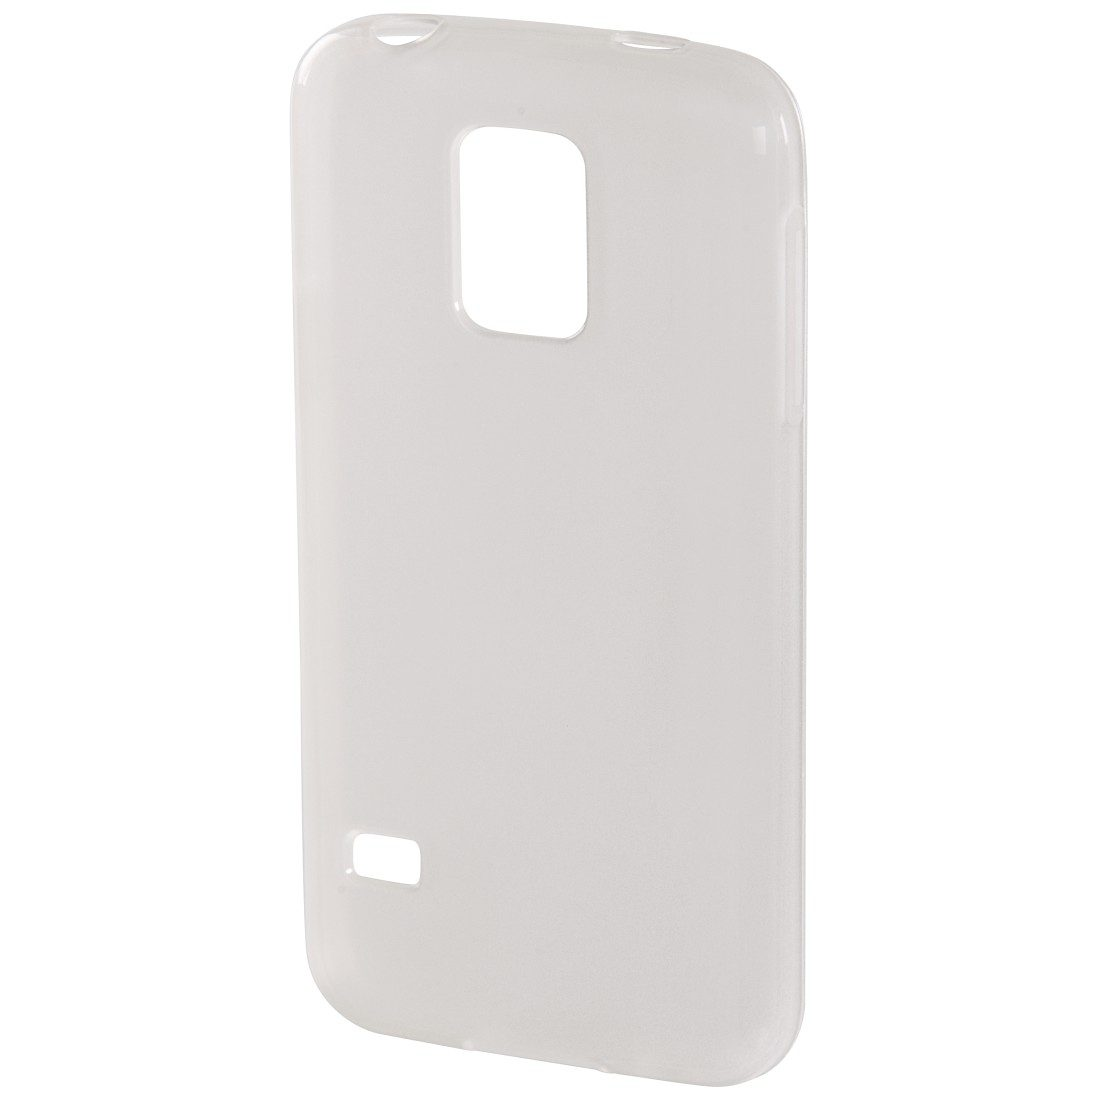 Hama Cover Crystal für Samsung Galaxy S5 mini, Transparent